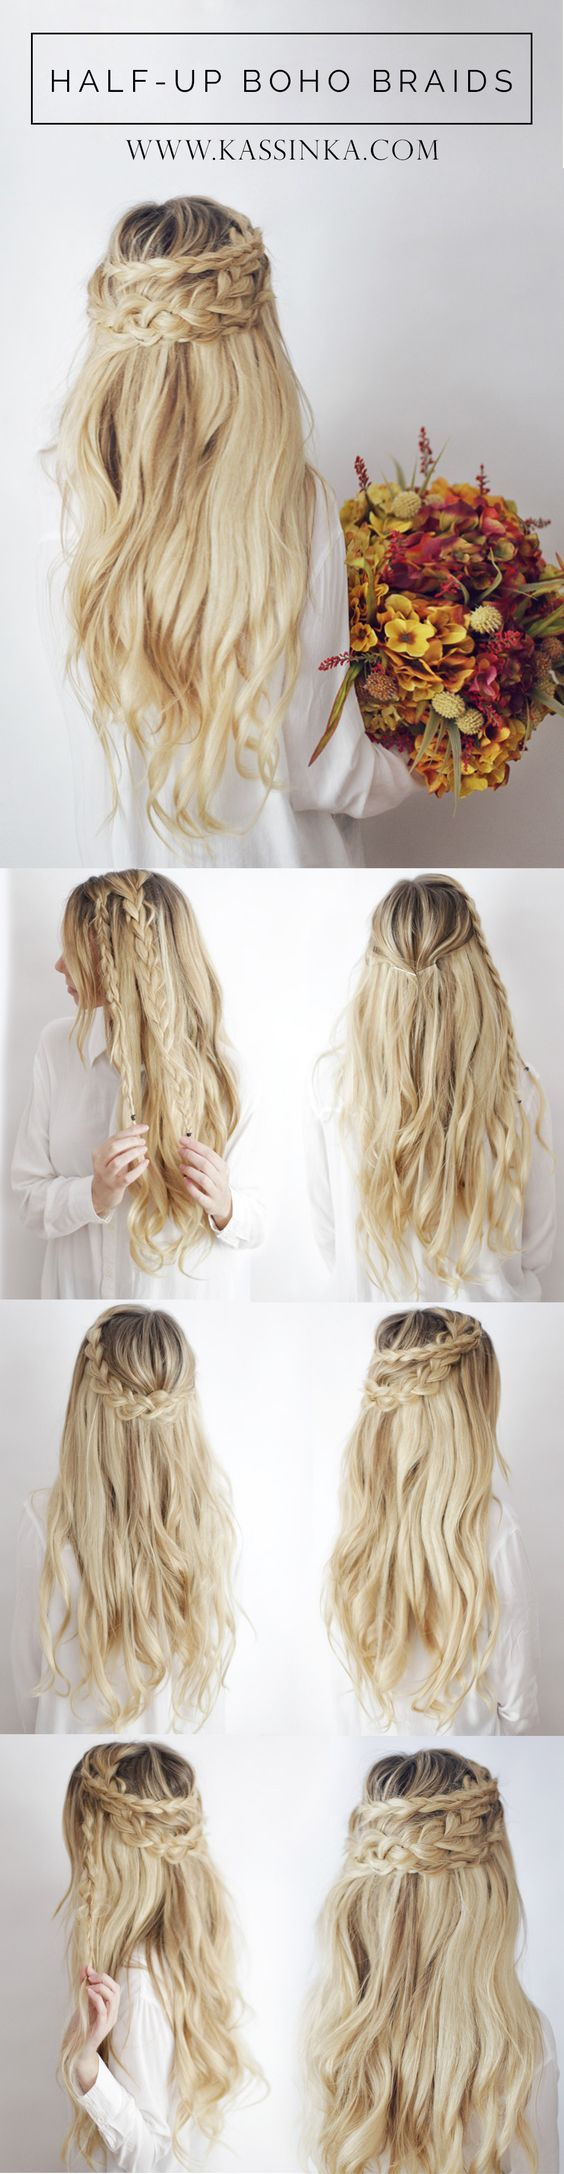 1146 best hairstyle images on Pinterest | Wedding hair styles ...